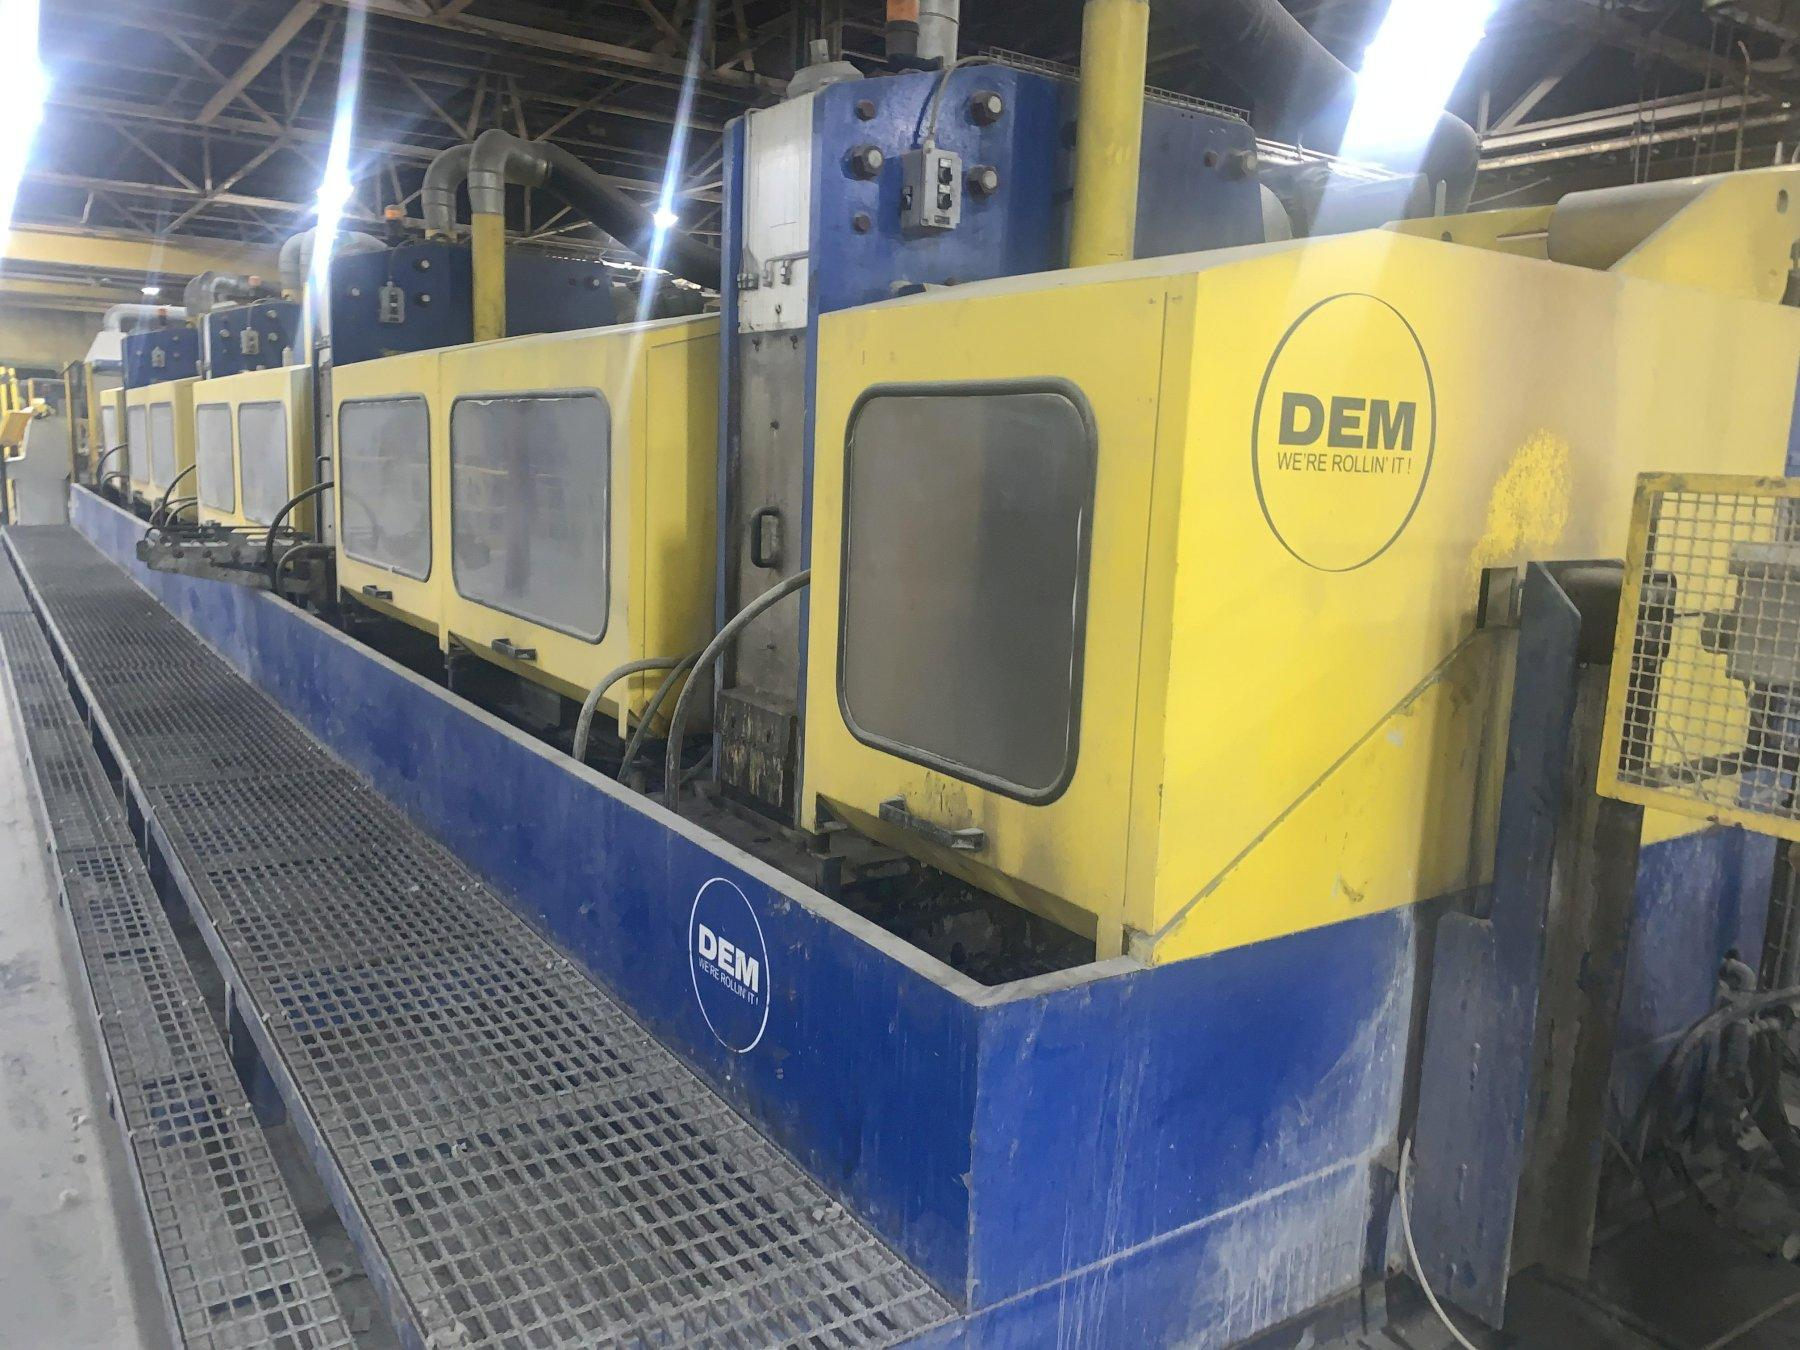 """.512"""" X 12"""" X 4 STAND DEM WIRE FLATENING ROLLING MILL LINE, YEAR 2017: STOCK #13898"""